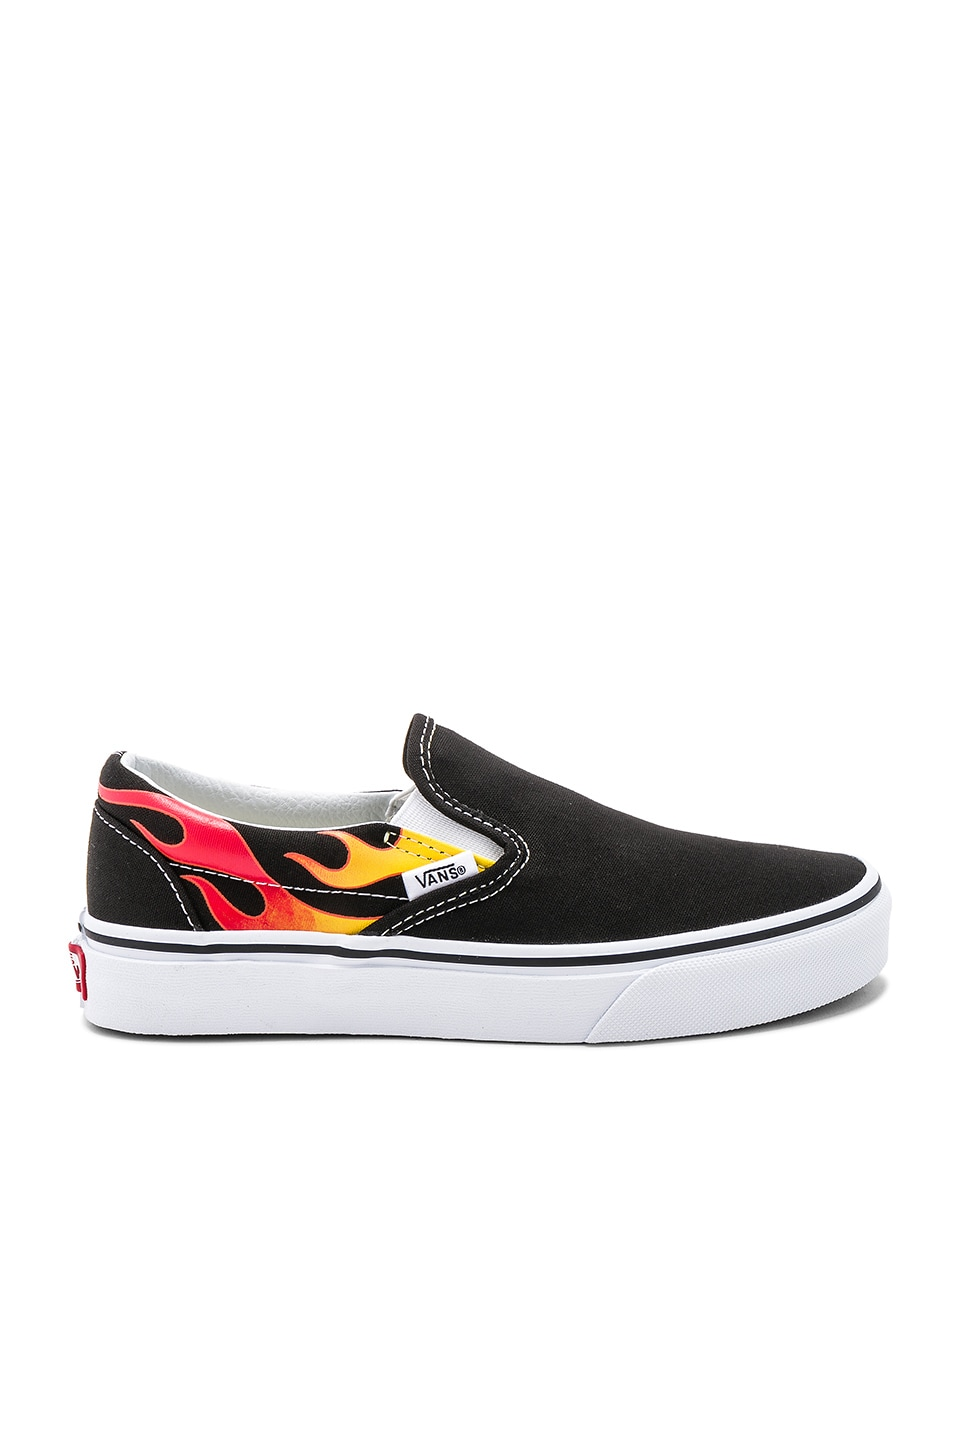 b42e1ef3b6 flame slip on vans